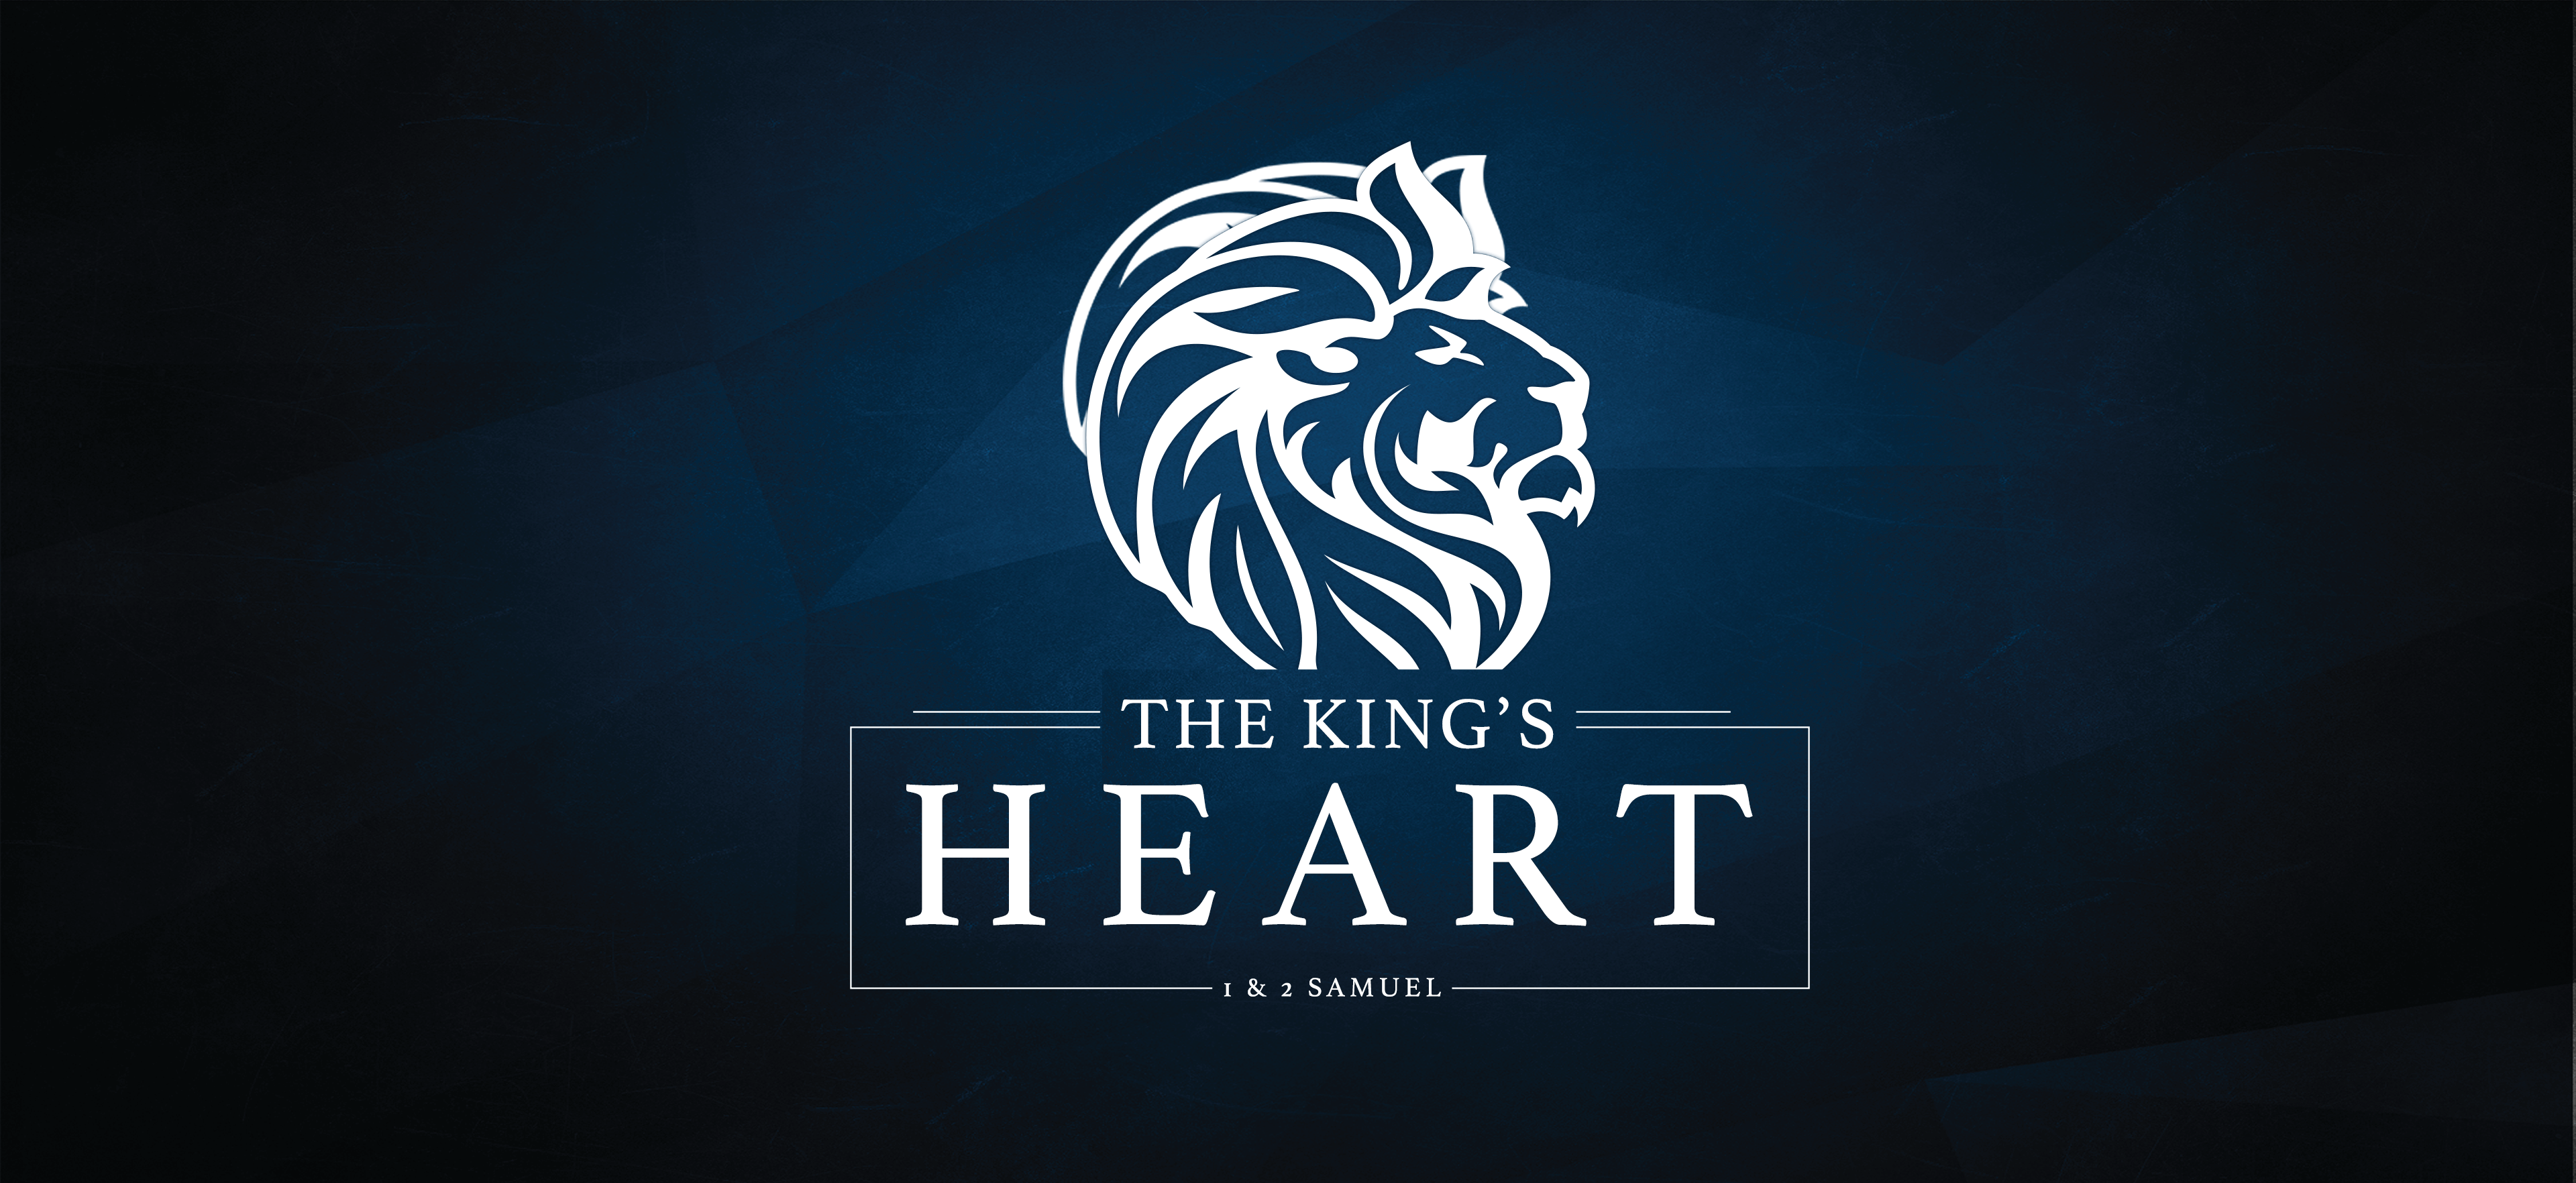 The King's Heart